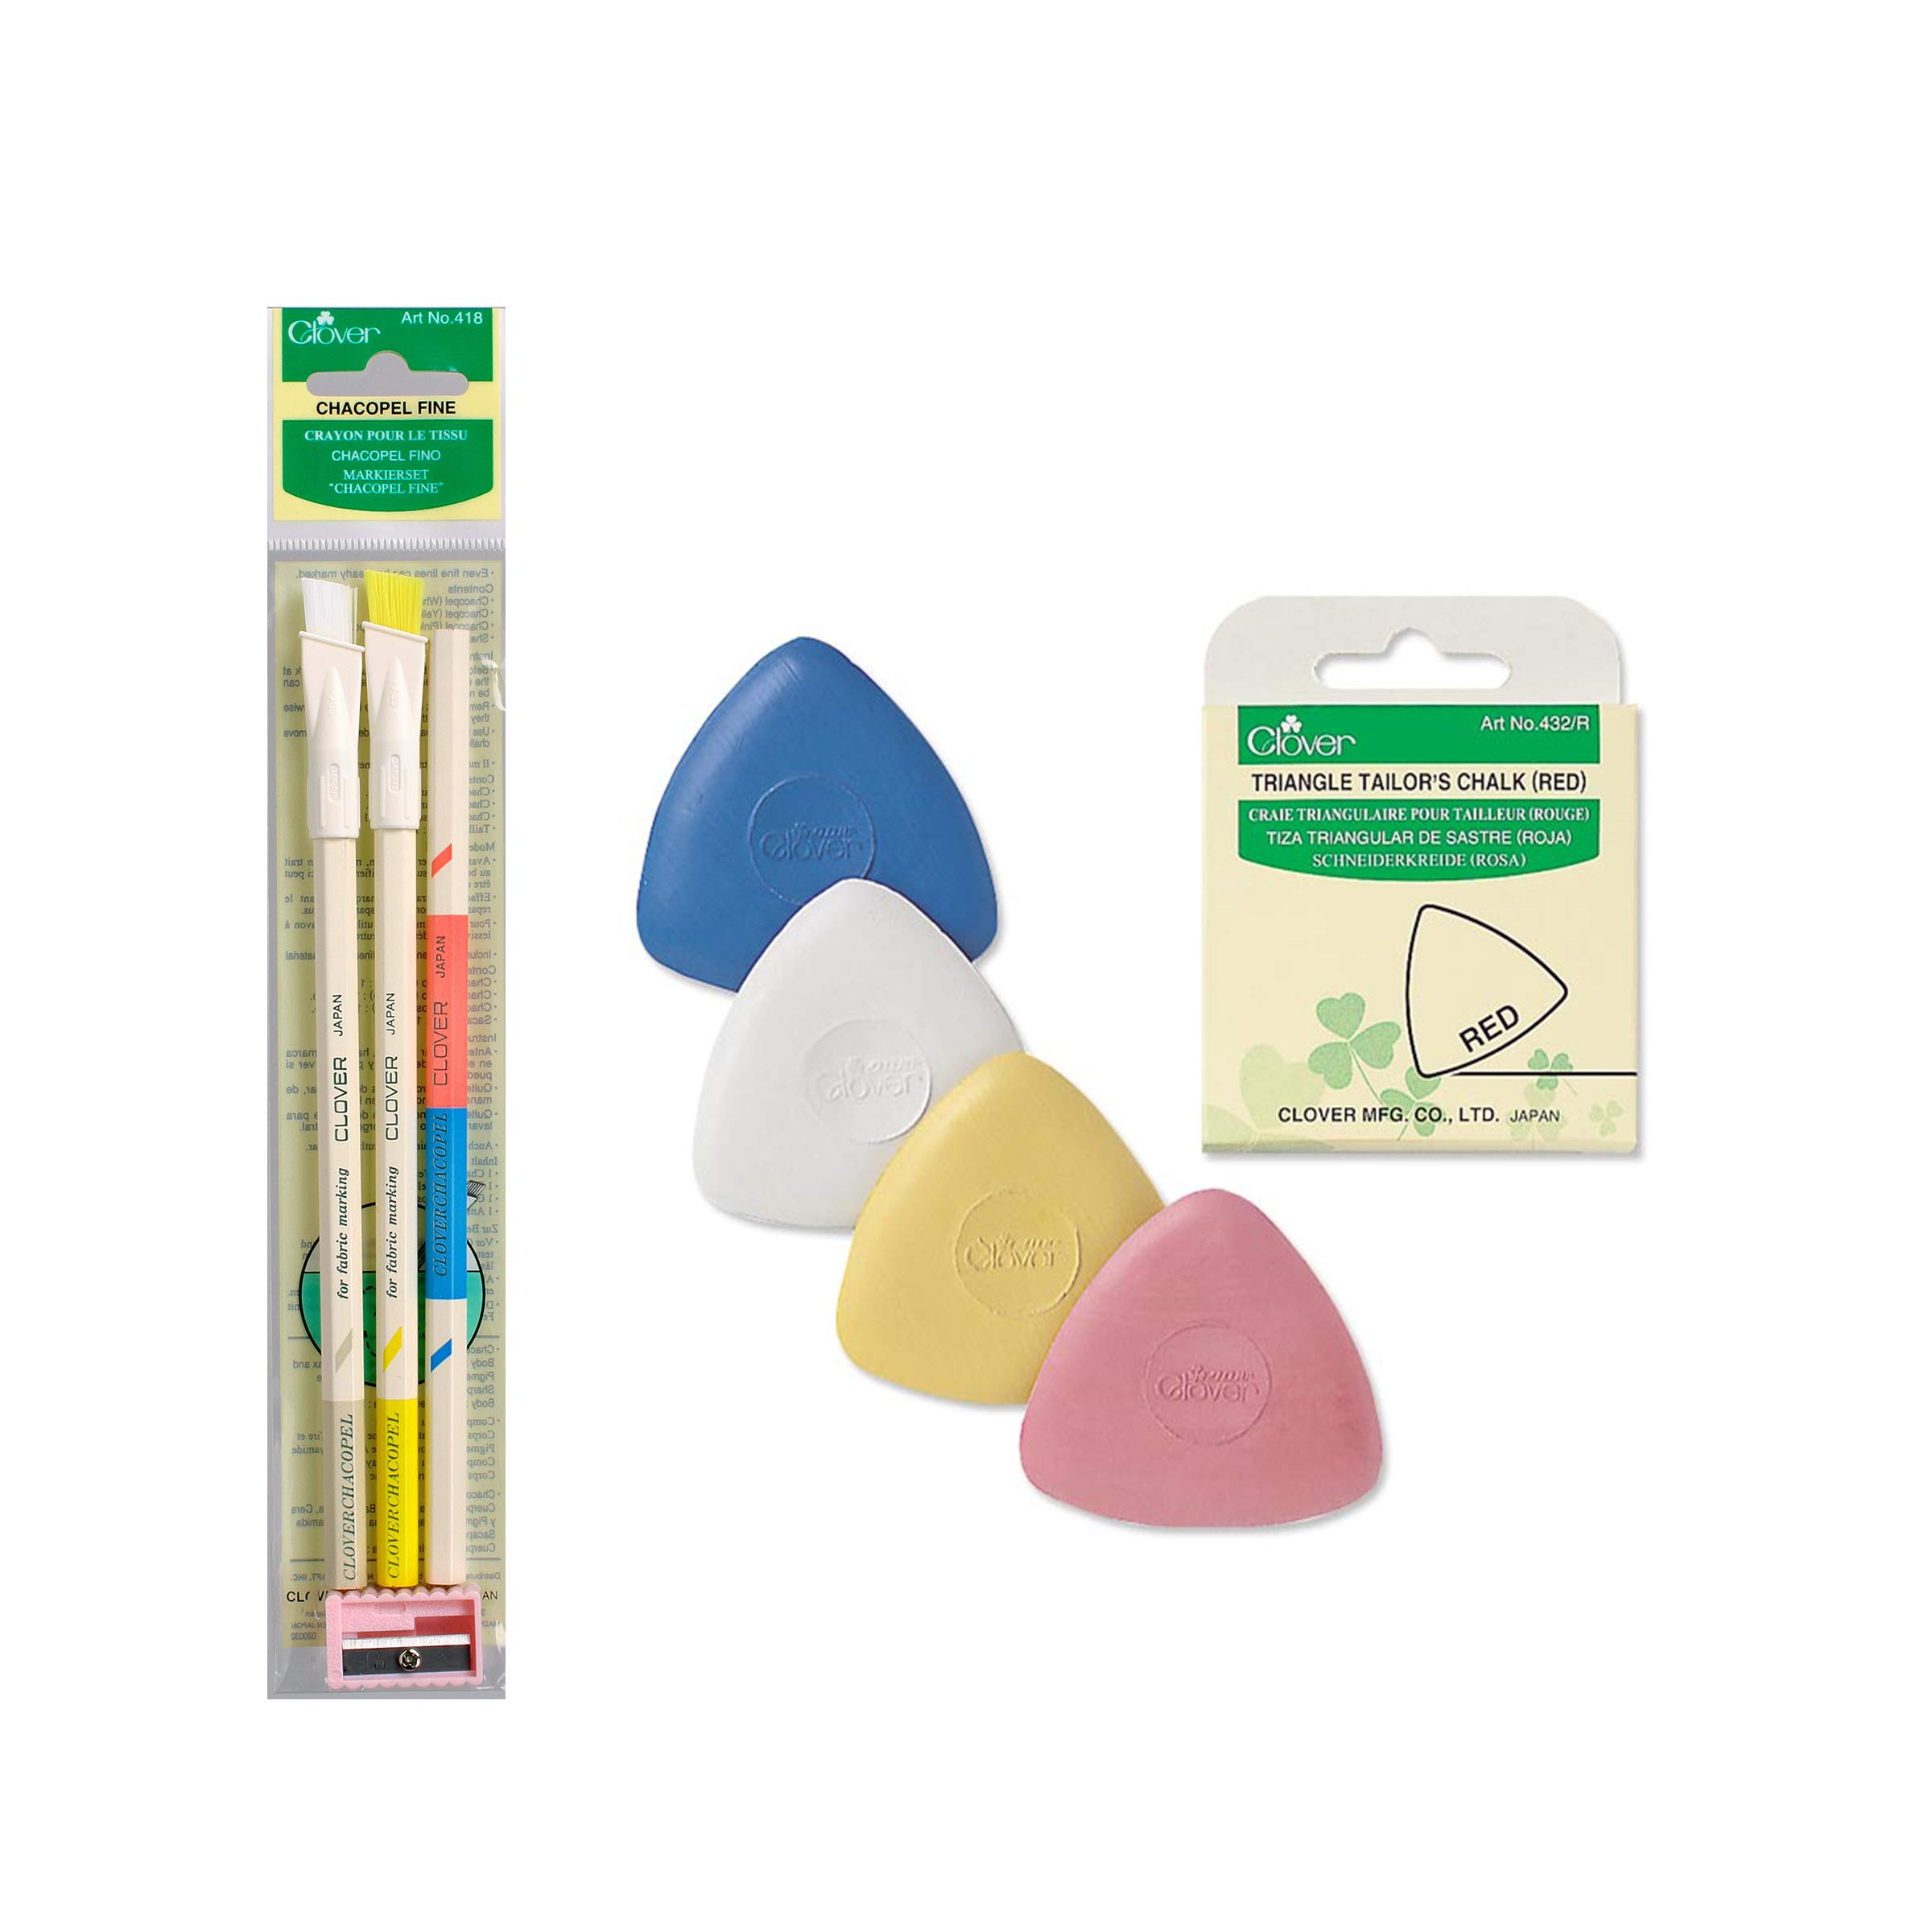 Clover E022 Chacopel and Tailors Bundle Chalk, 85, Multiple 6 by CLOVER